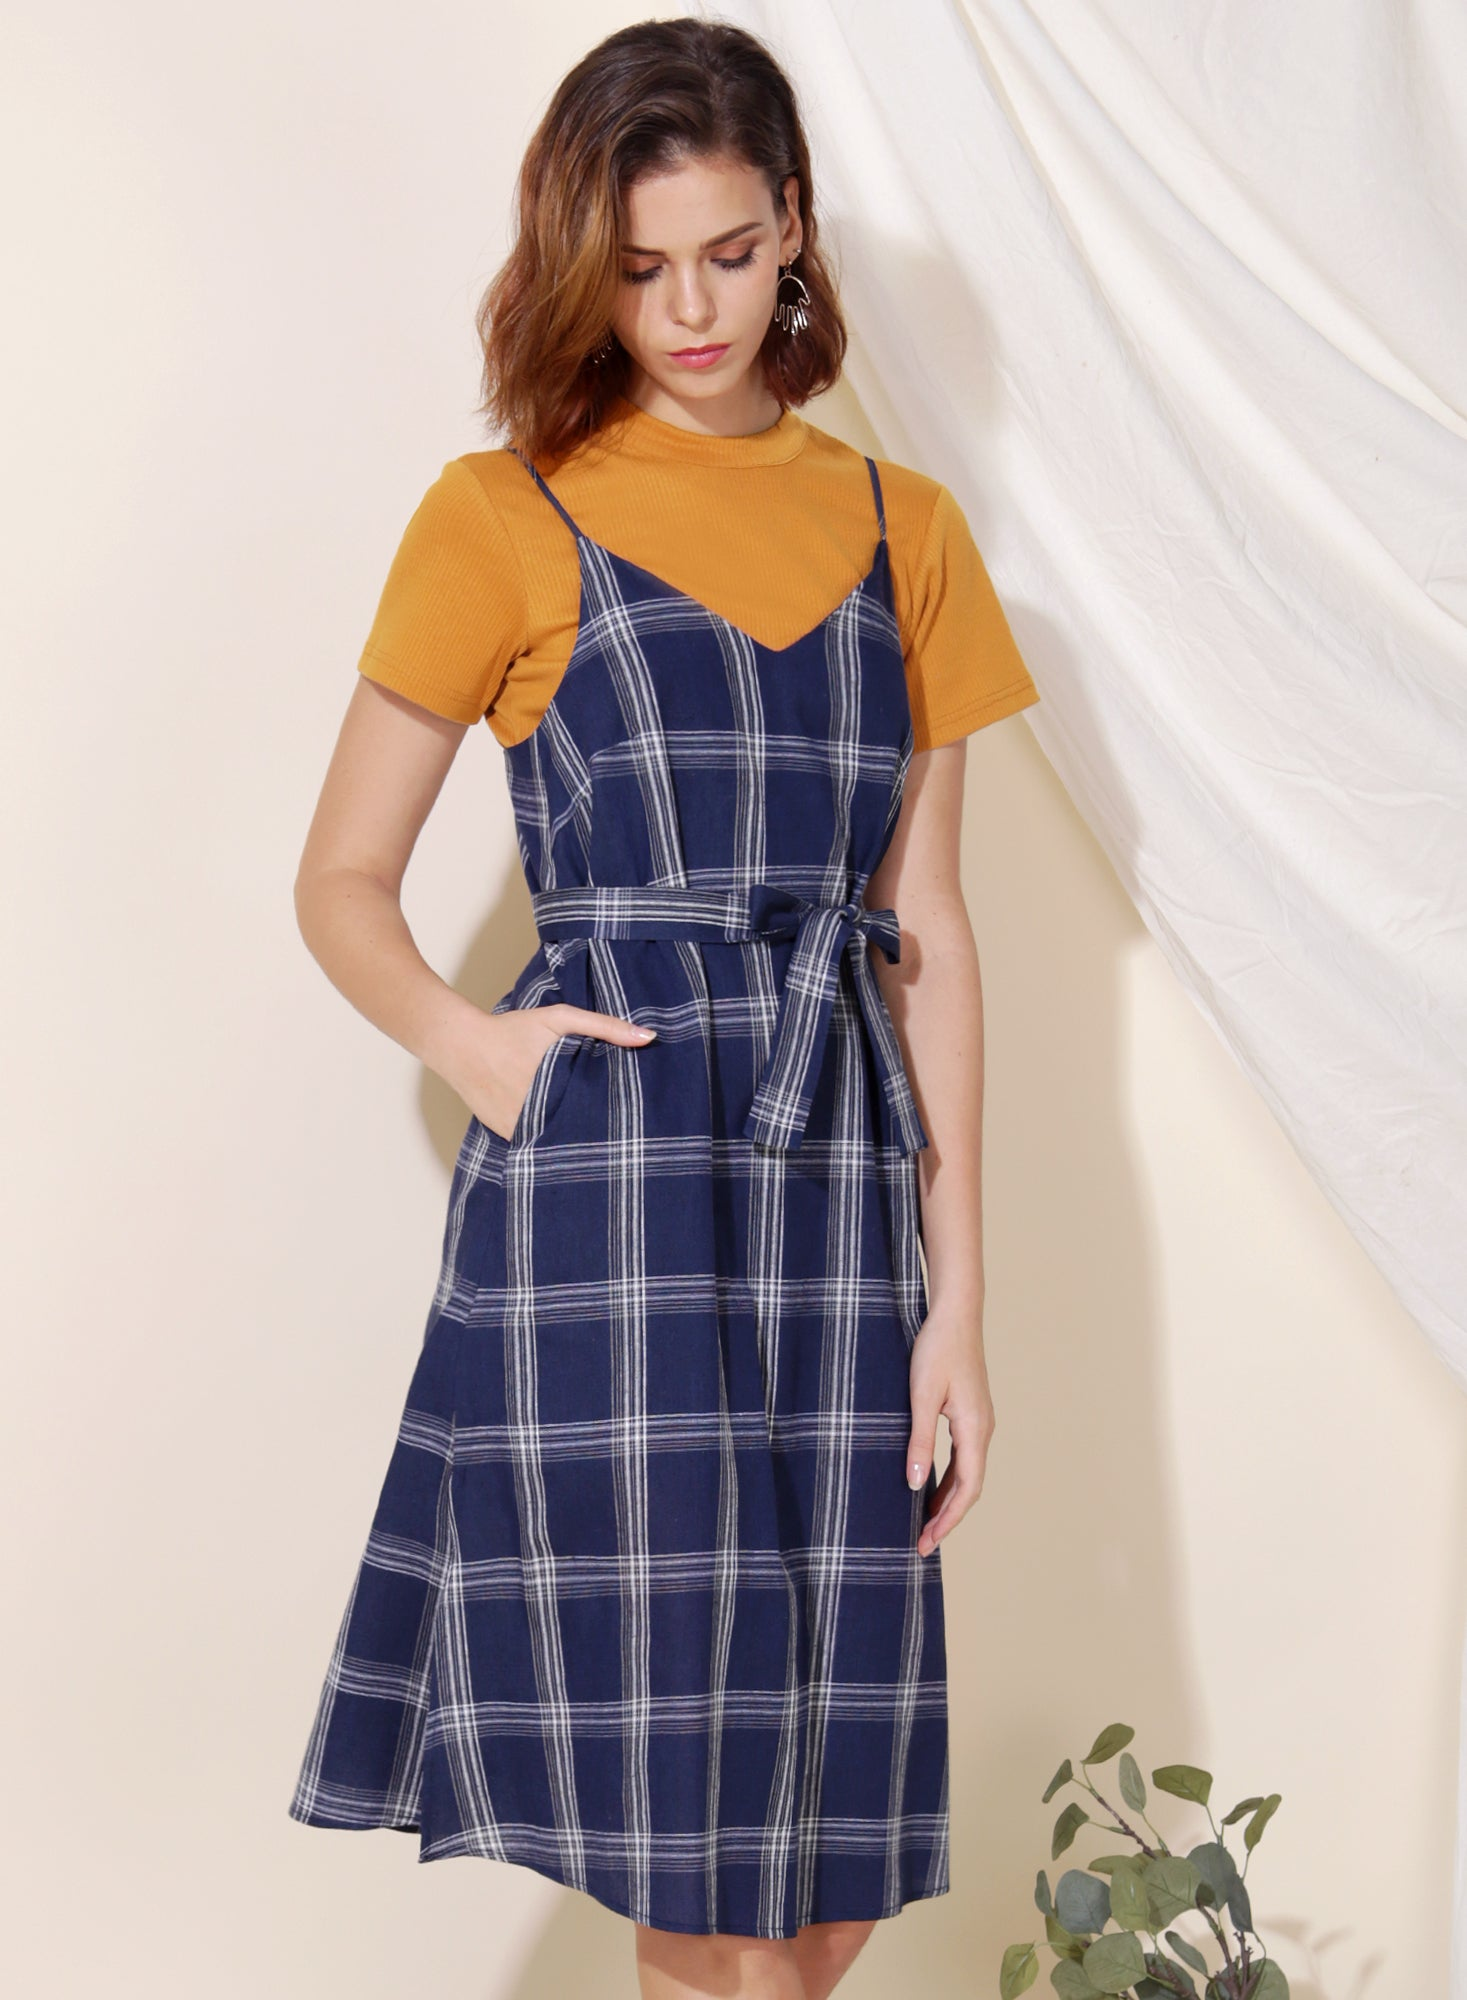 Boundless Checkered Slip Dress (Navy) at $ 41.50 only sold at And Well Dressed Online Fashion Store Singapore